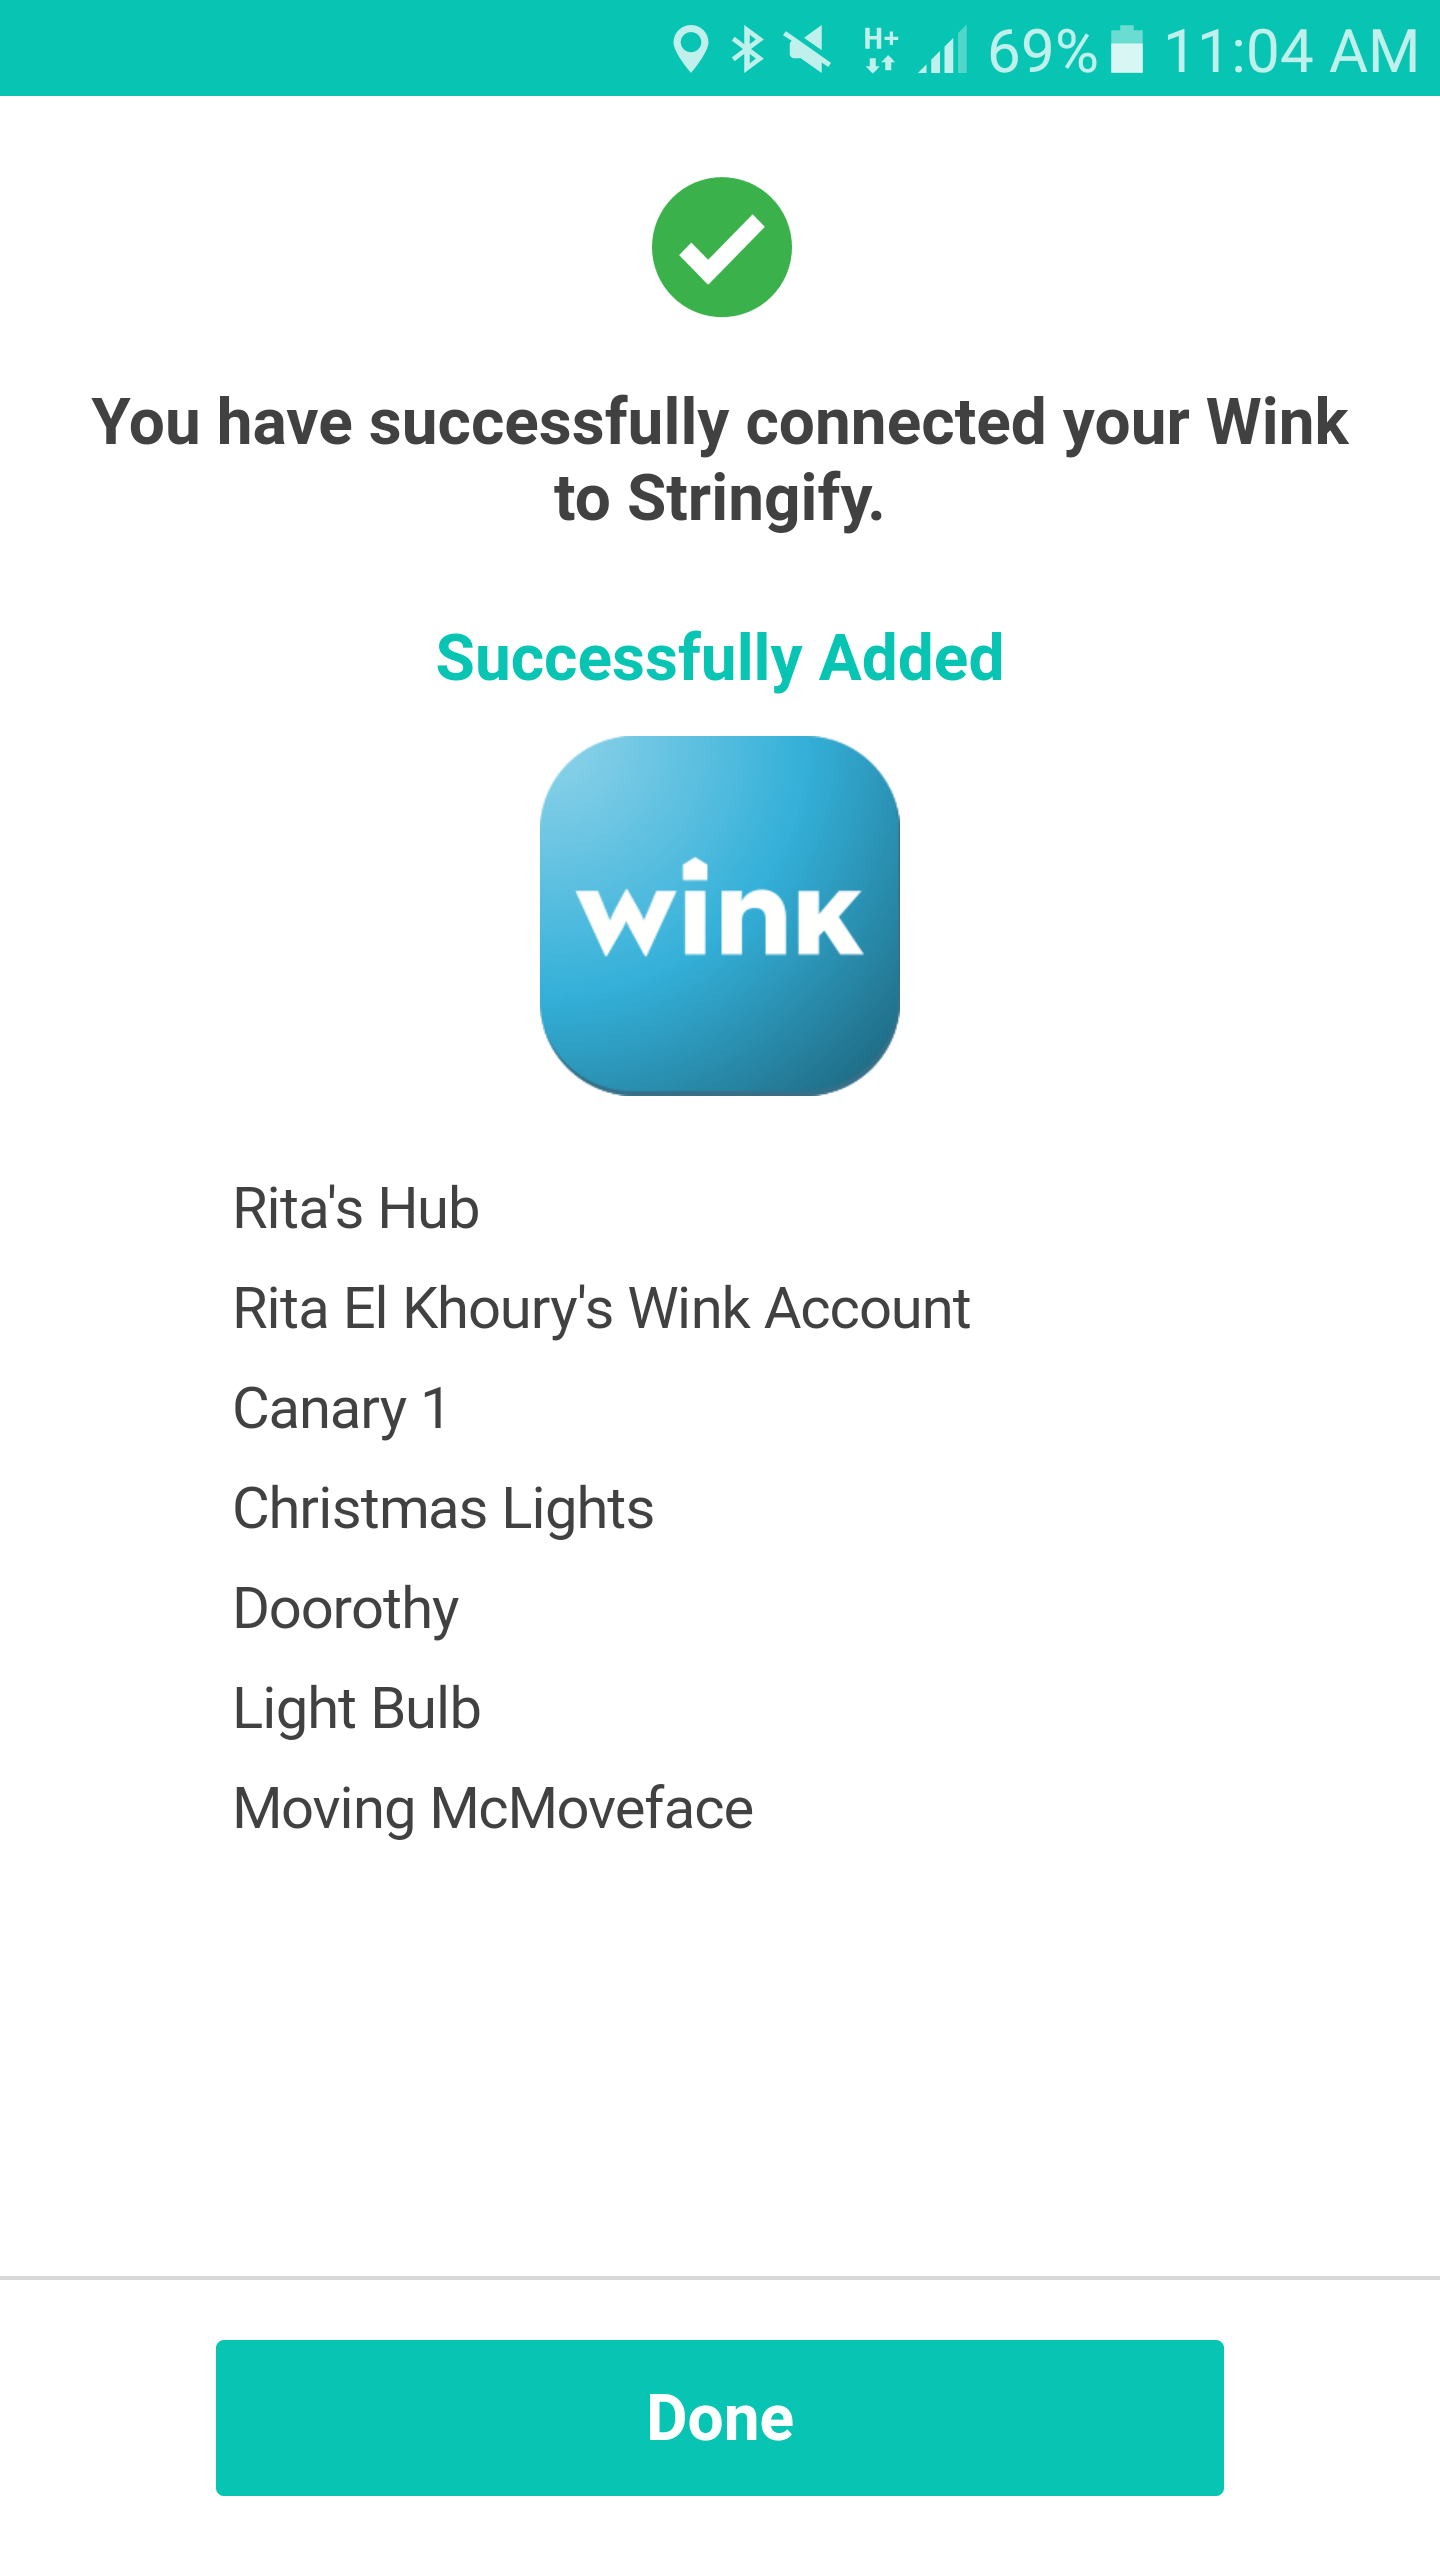 adding my wink as a thing brings all its connected gadgets and lets me create powerful flows